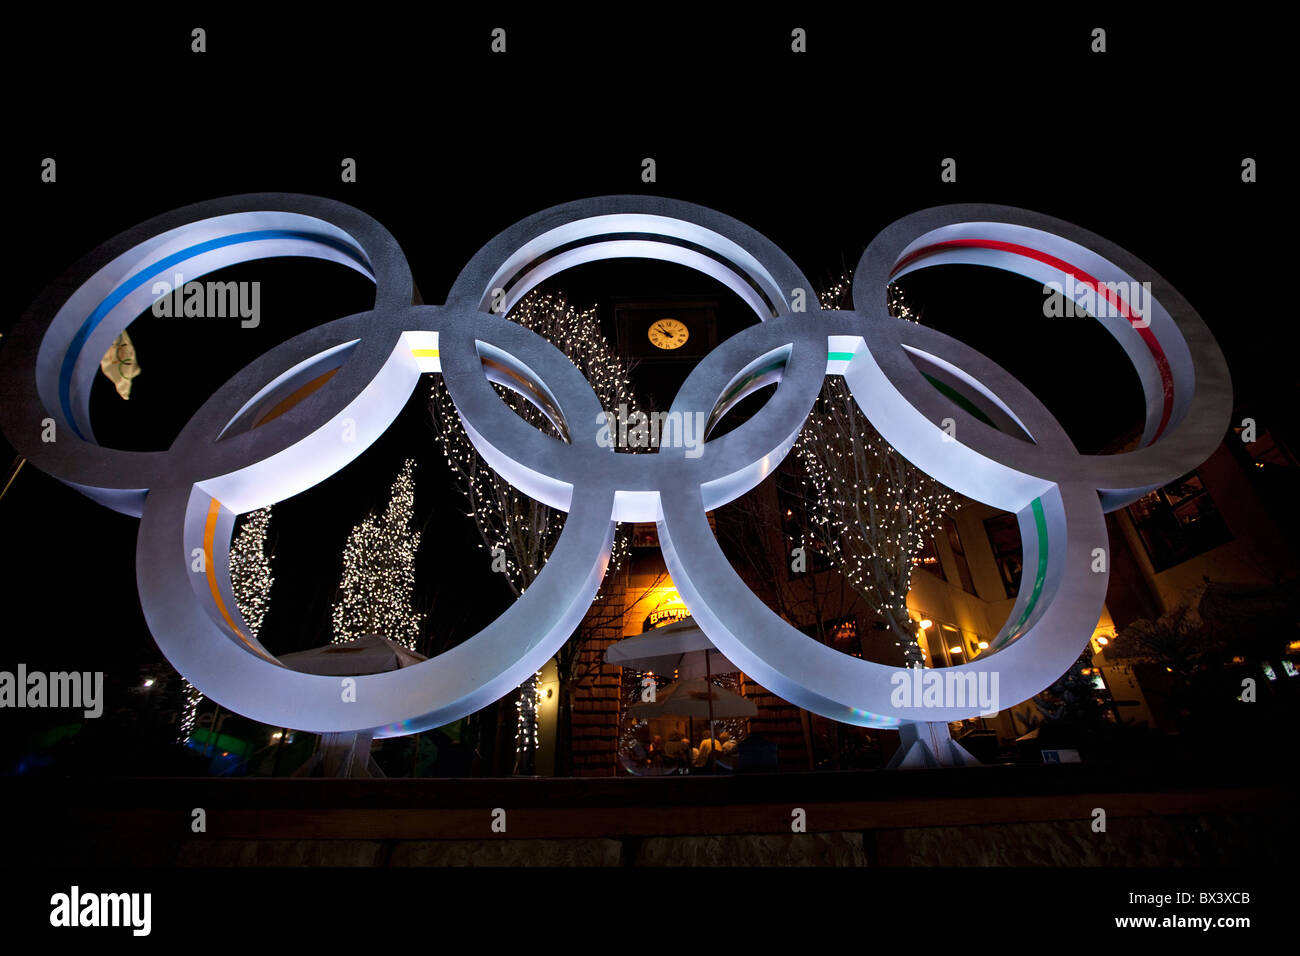 2010 Vancouver Winter Olympics; Olympic rings; Whistler Village - Stock Image